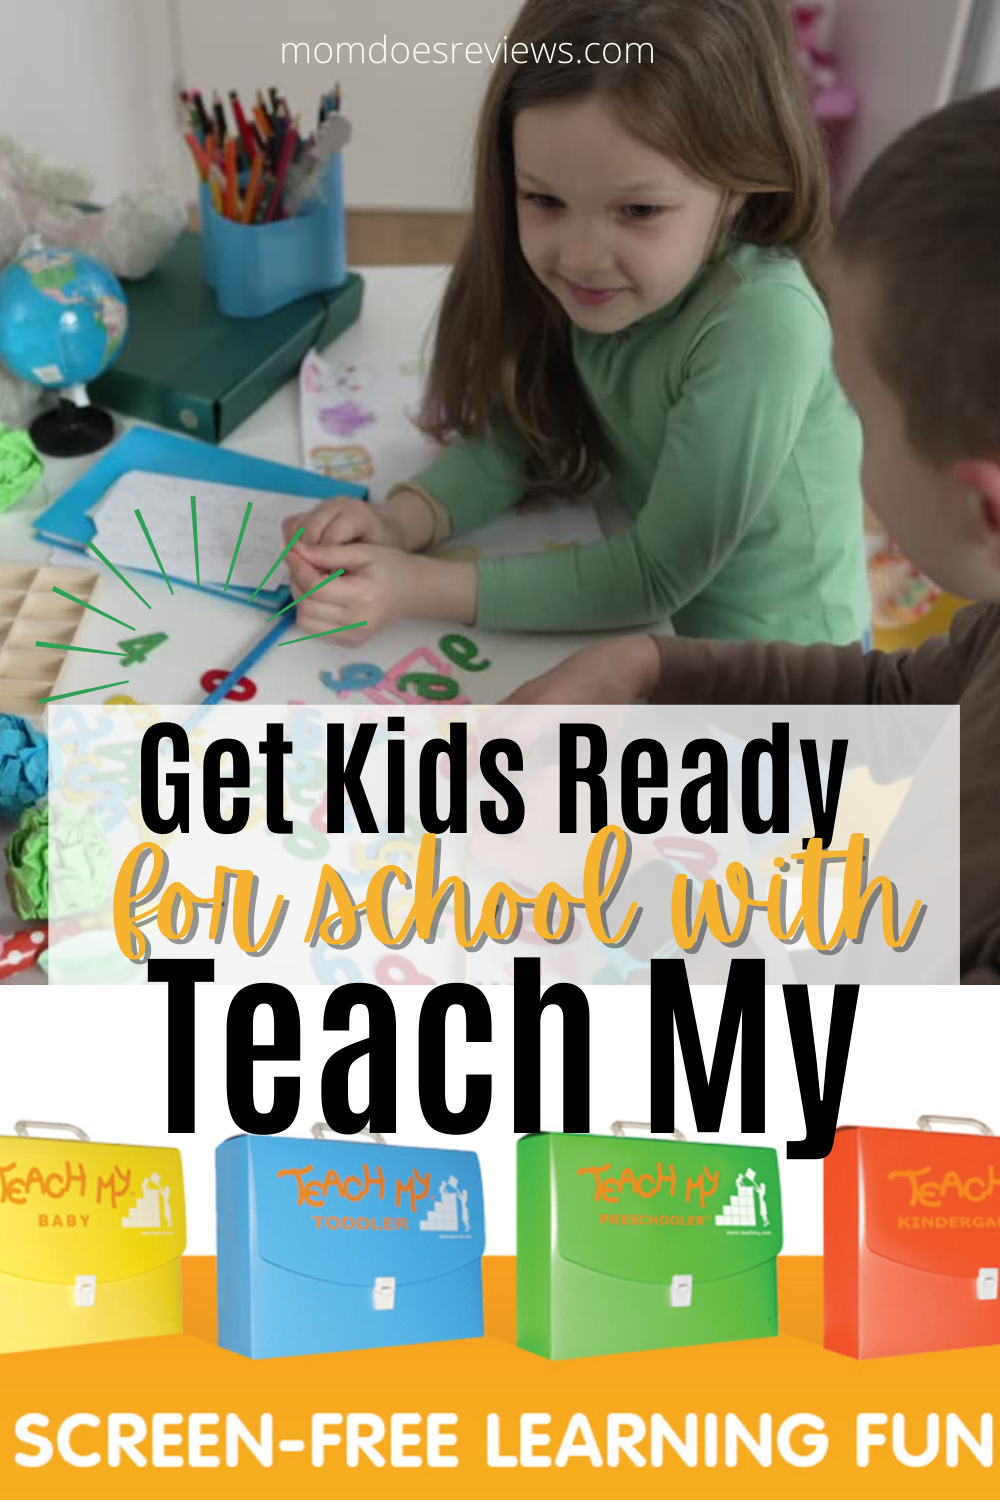 Get Your Kids Ready for School with Screen-Free Teach My Learning Kits! #Back2School21